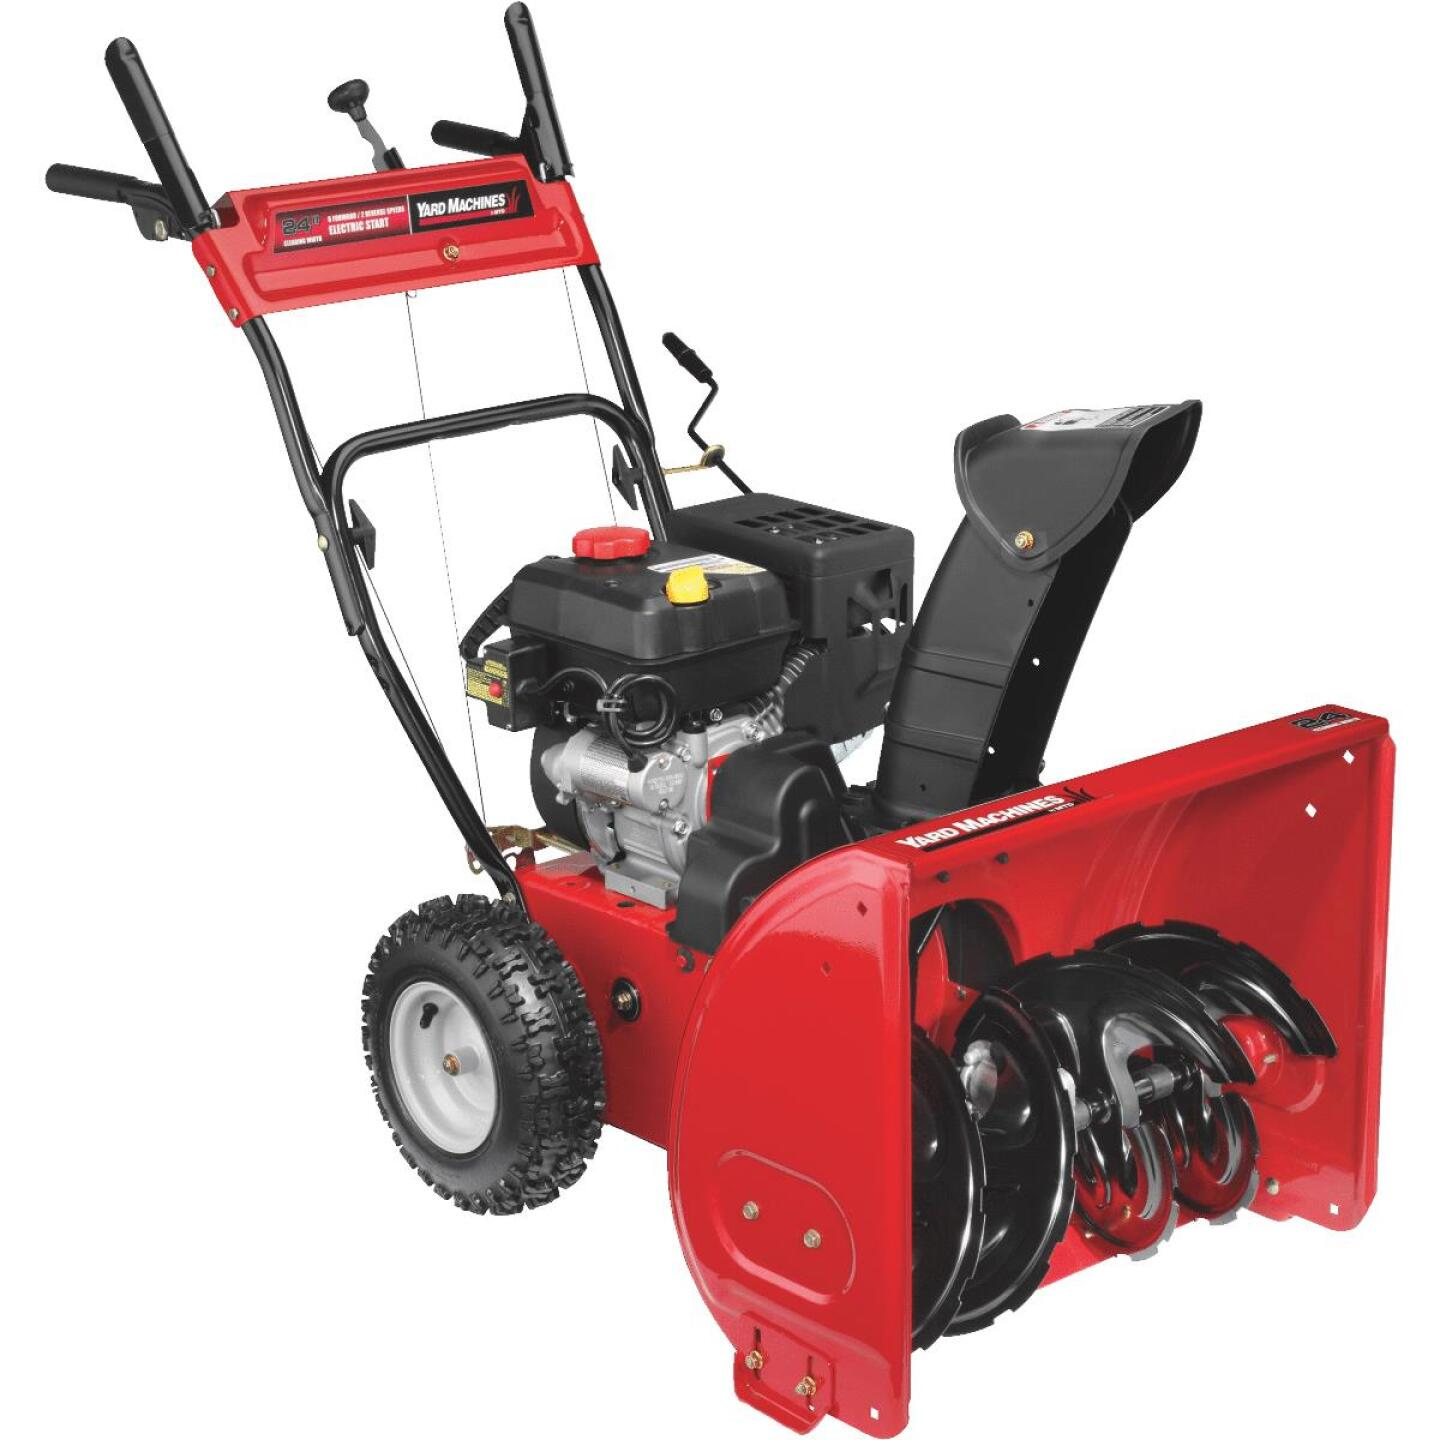 Yard Machine 24 In. 208cc 2-Stage Gas Snow Blower Image 1